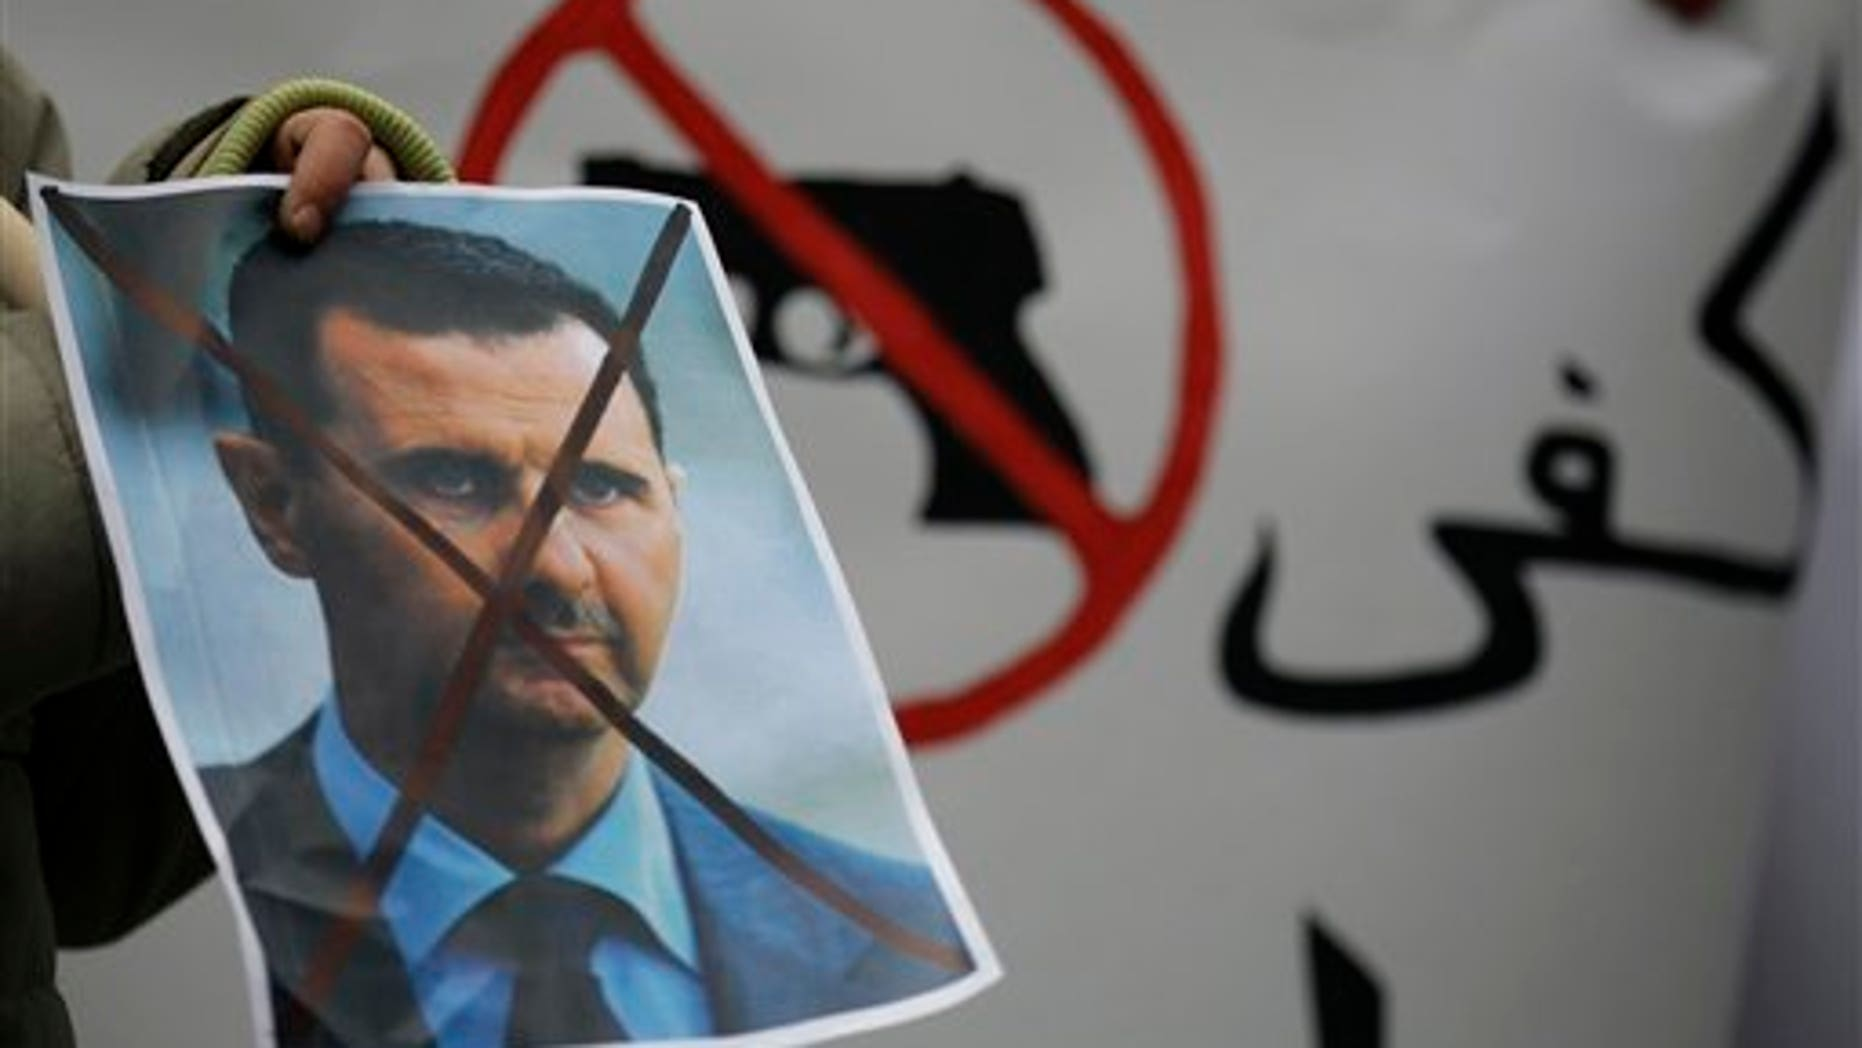 Dec. 23: A Syrian immigrant holds a crossed out depiction of Syrian President Bashar al-Assad during a rally against his regime in front of the Syrian embassy in Belgrade, Serbia.